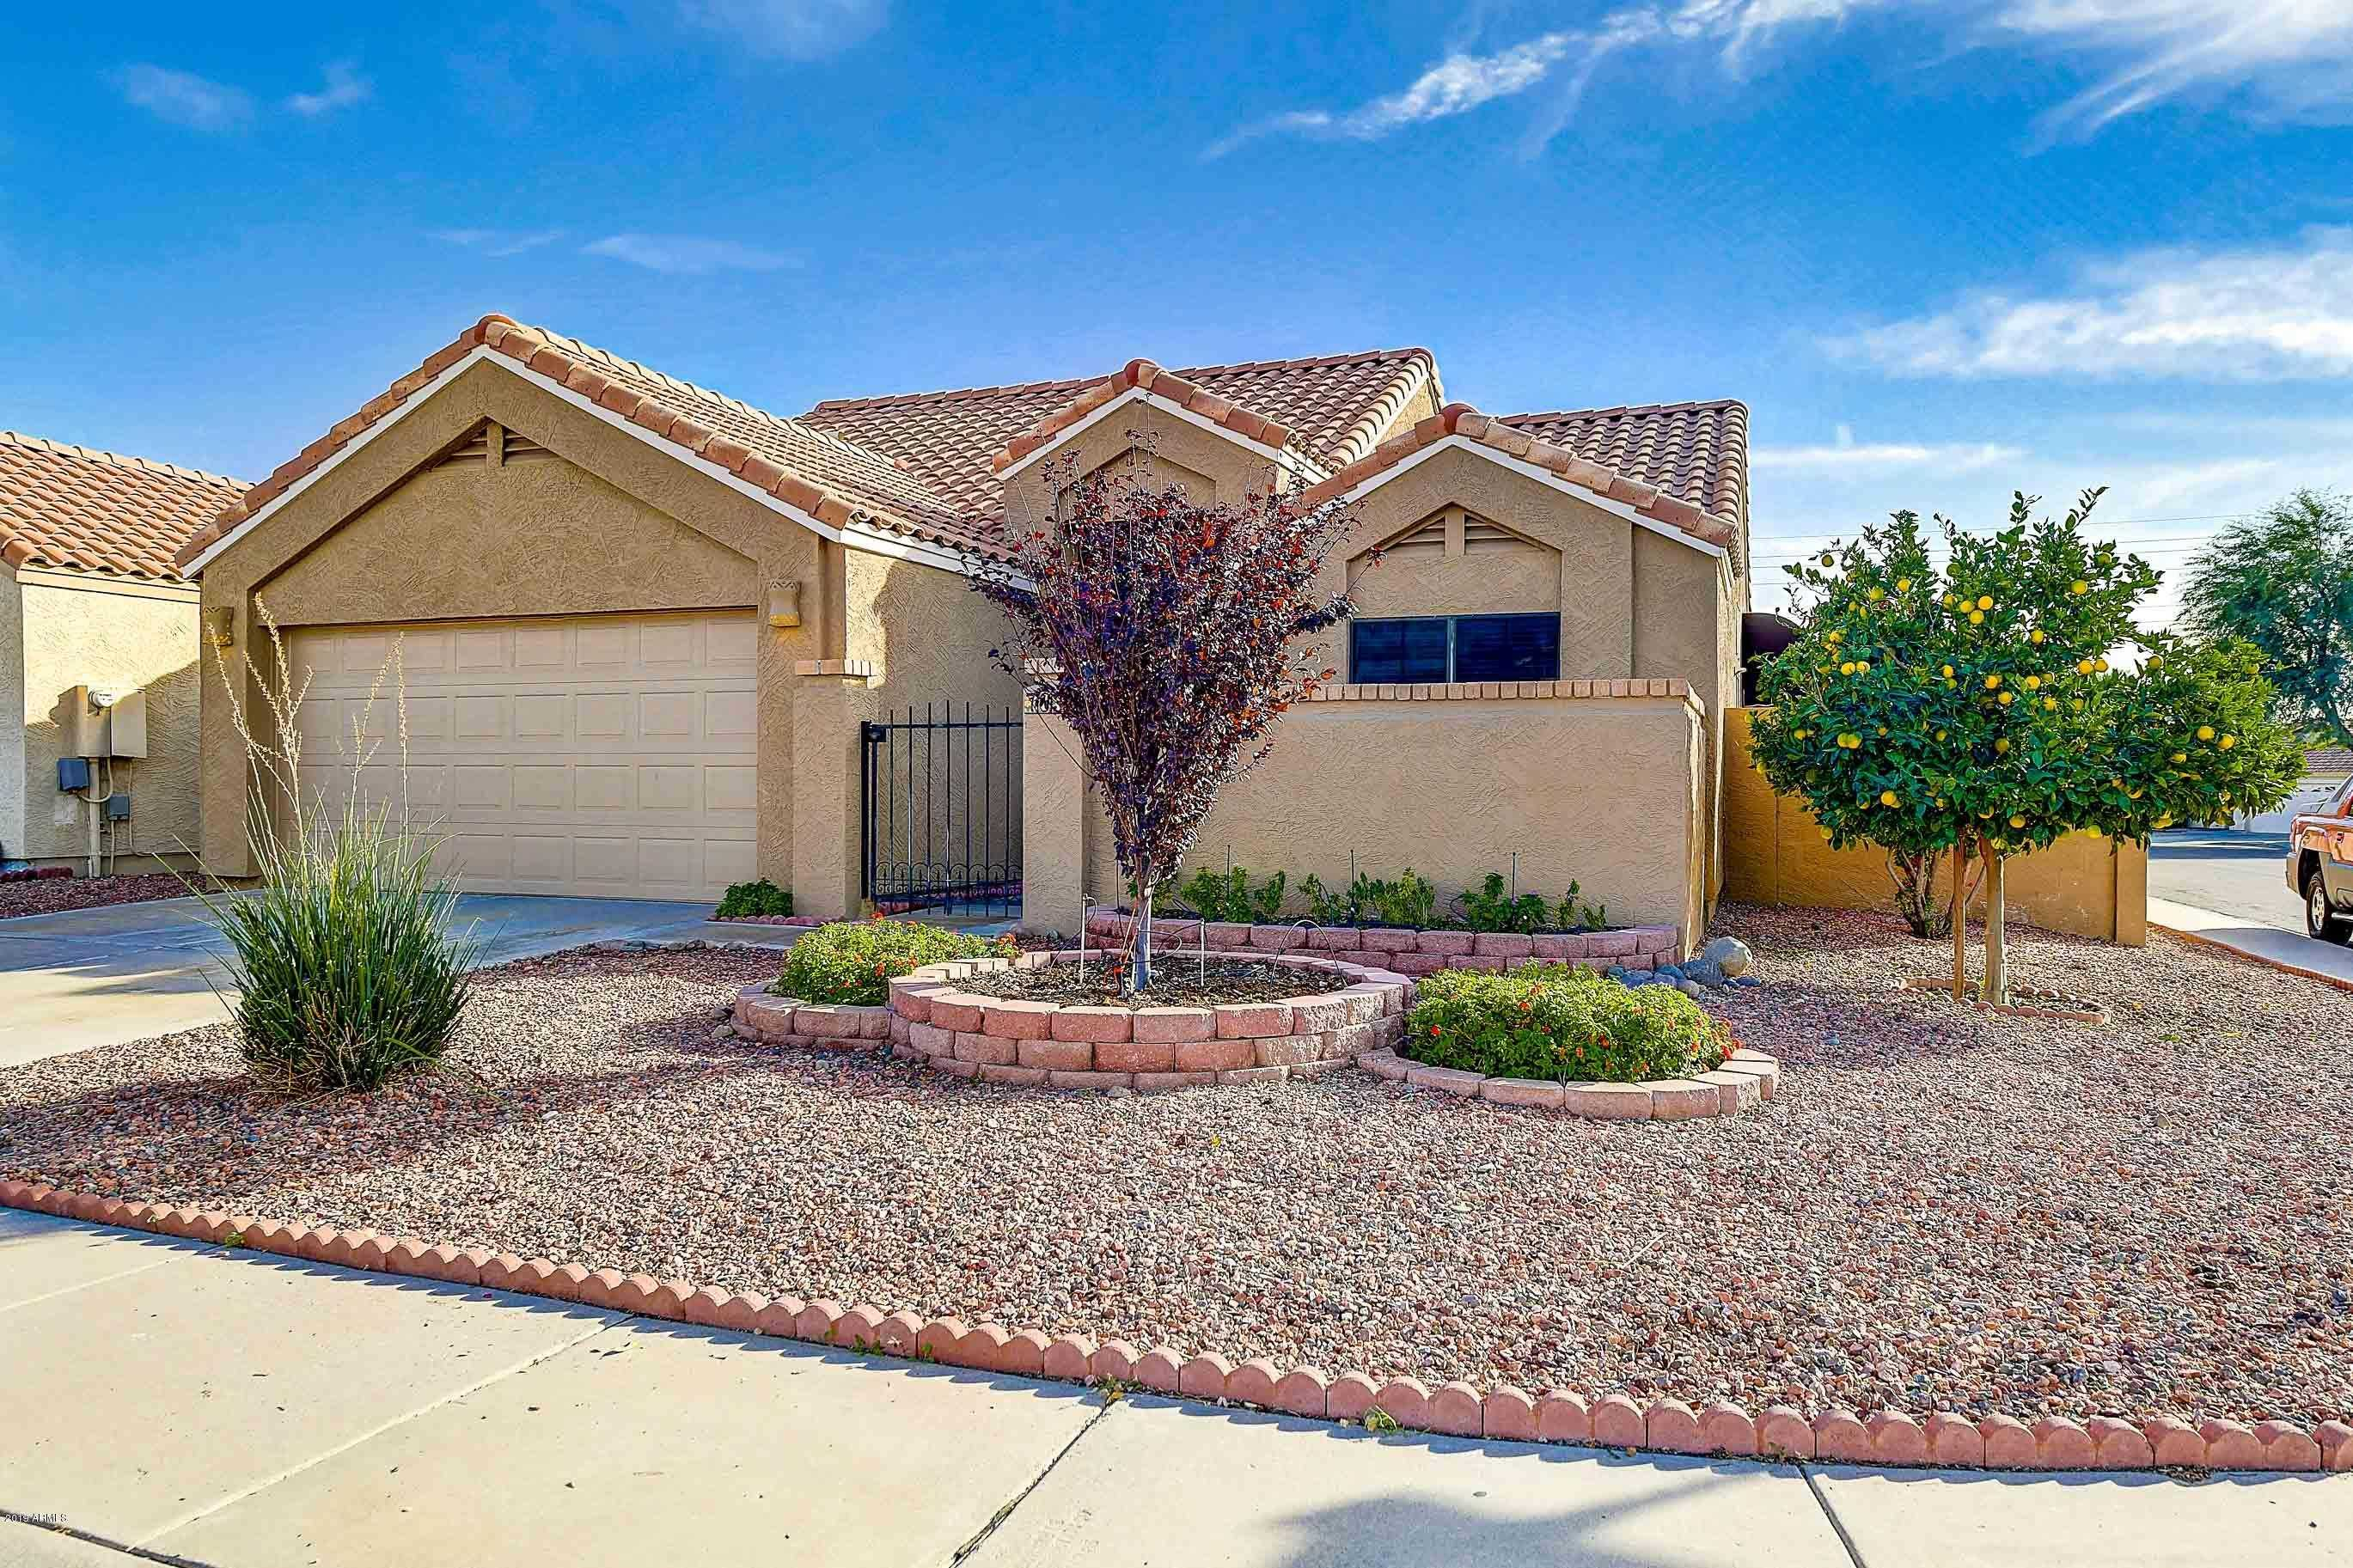 $292,000 - 3Br/2Ba - Home for Sale in Arrowhead Ranch 12 Amd Lt 1-170 Tr A-c, Glendale